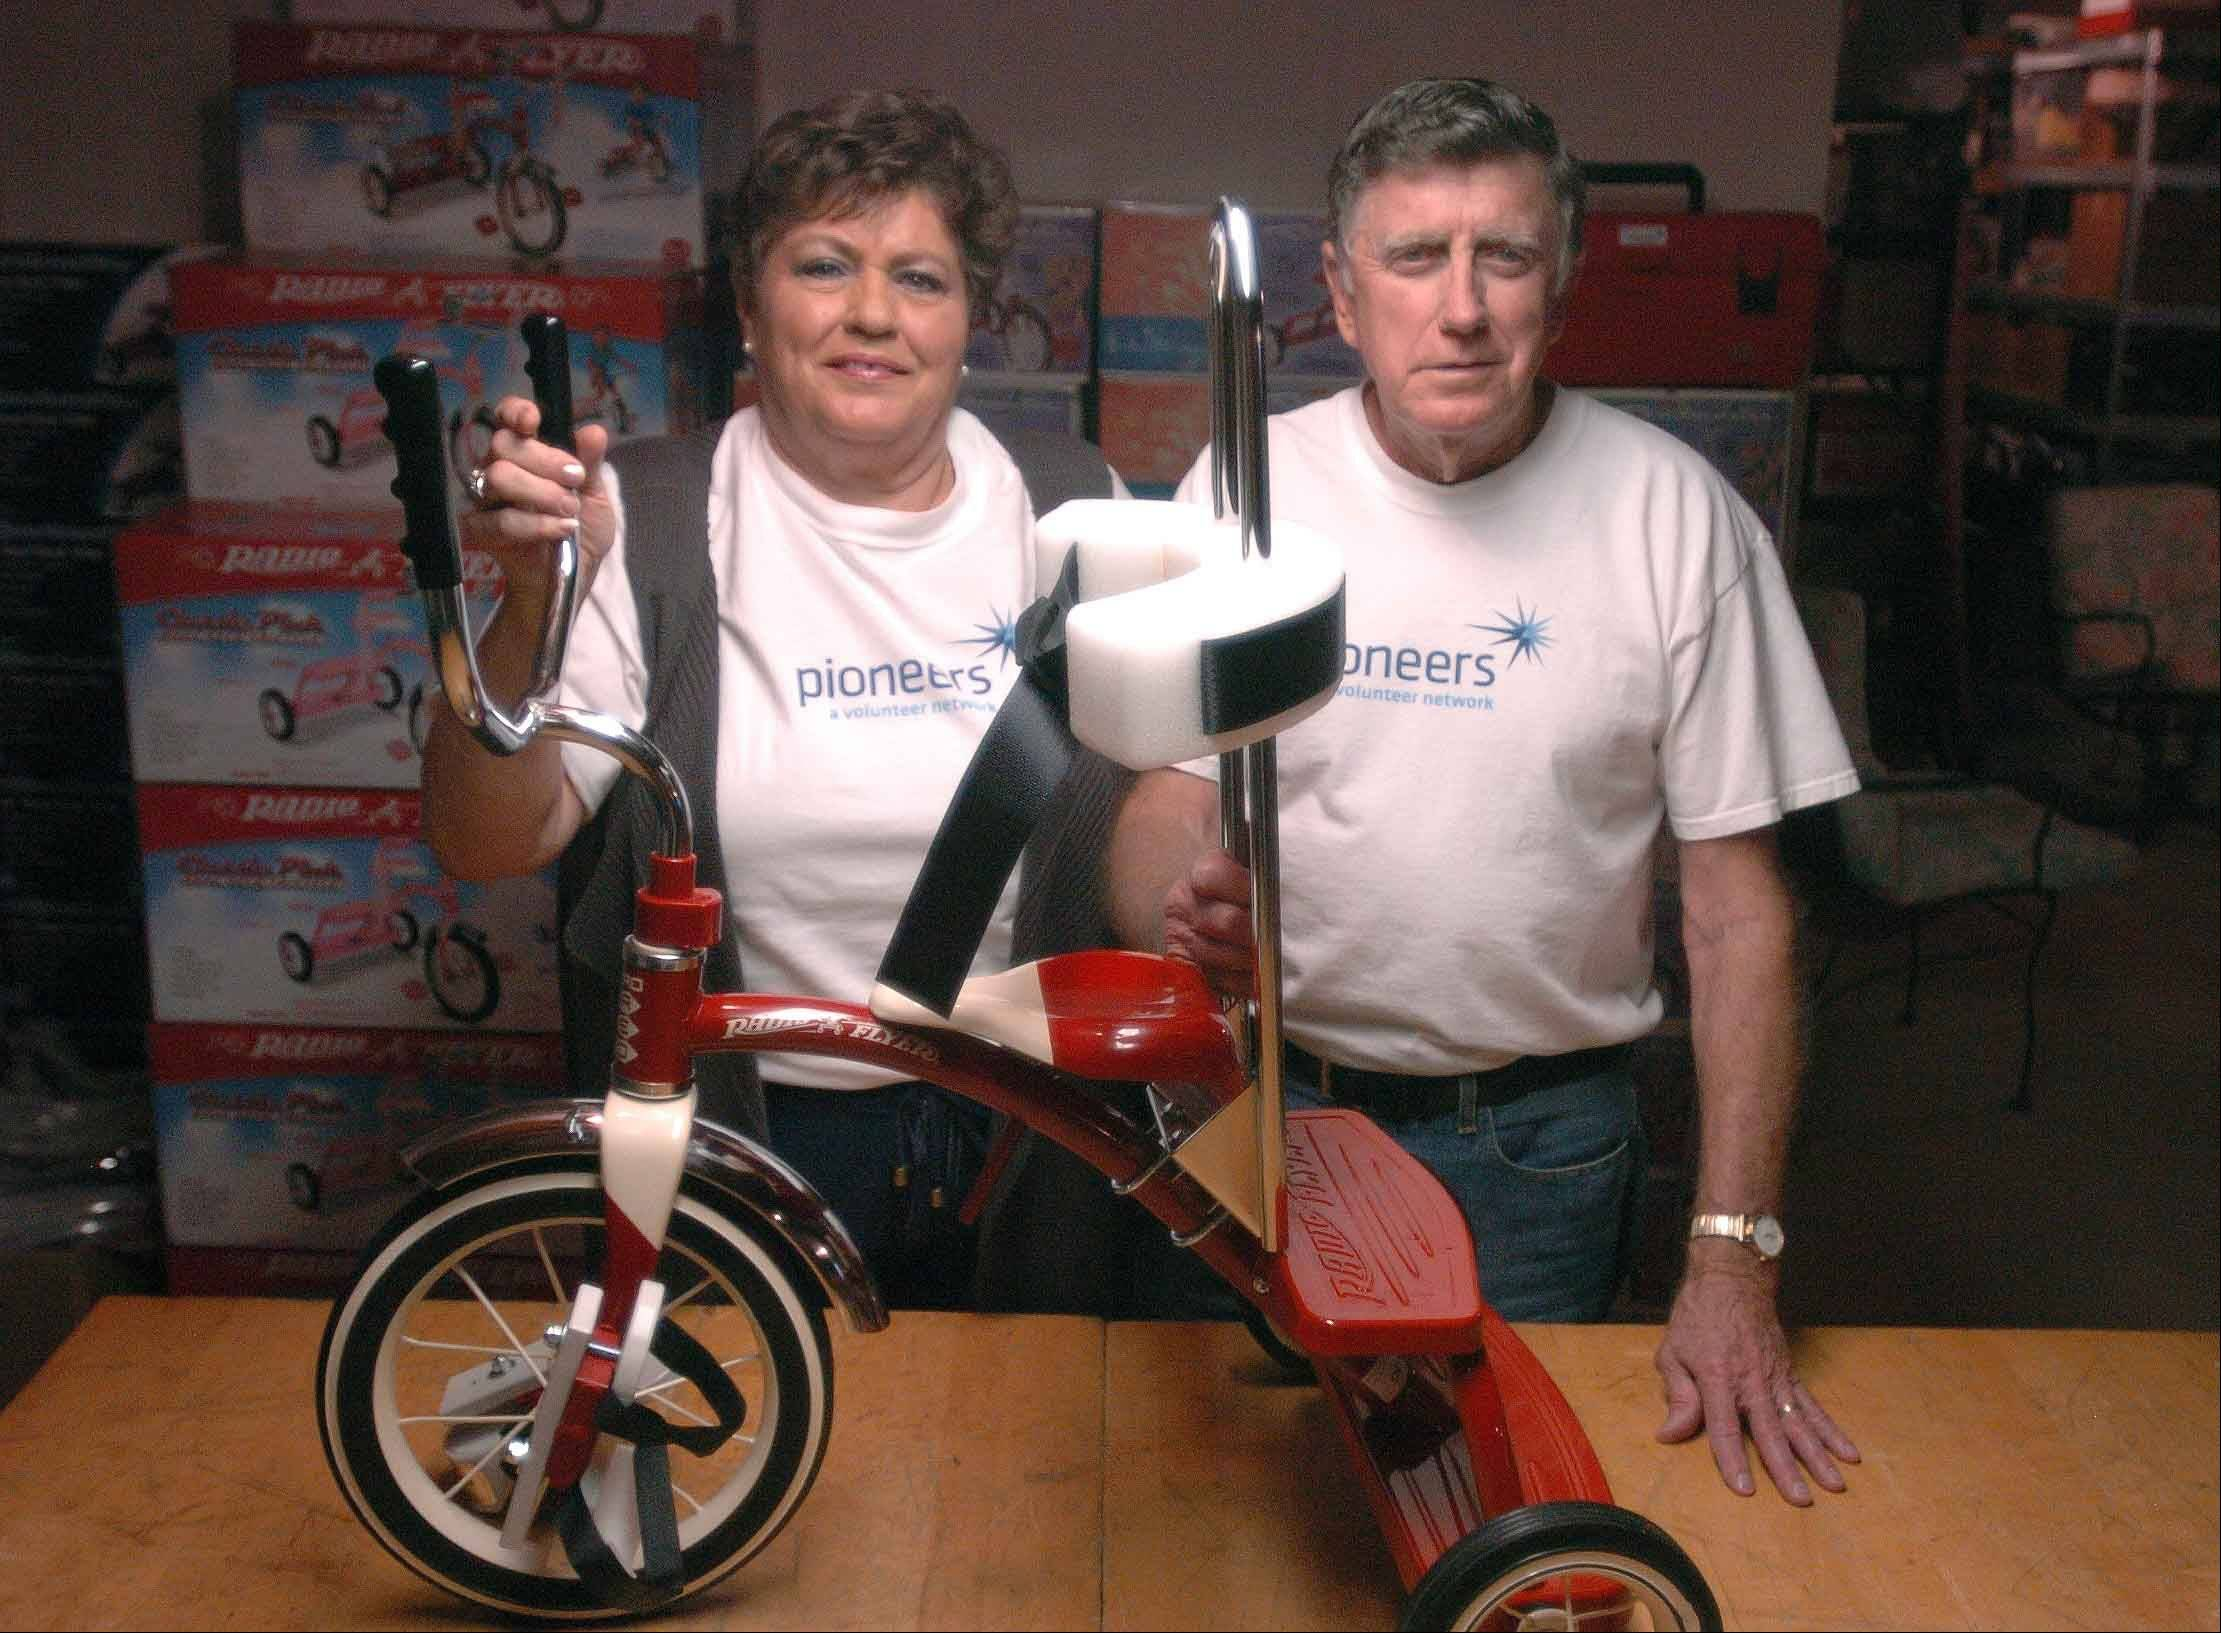 Gordon and Connie Hankins of Naperville build tricycles for disabled children in their Naperville home.